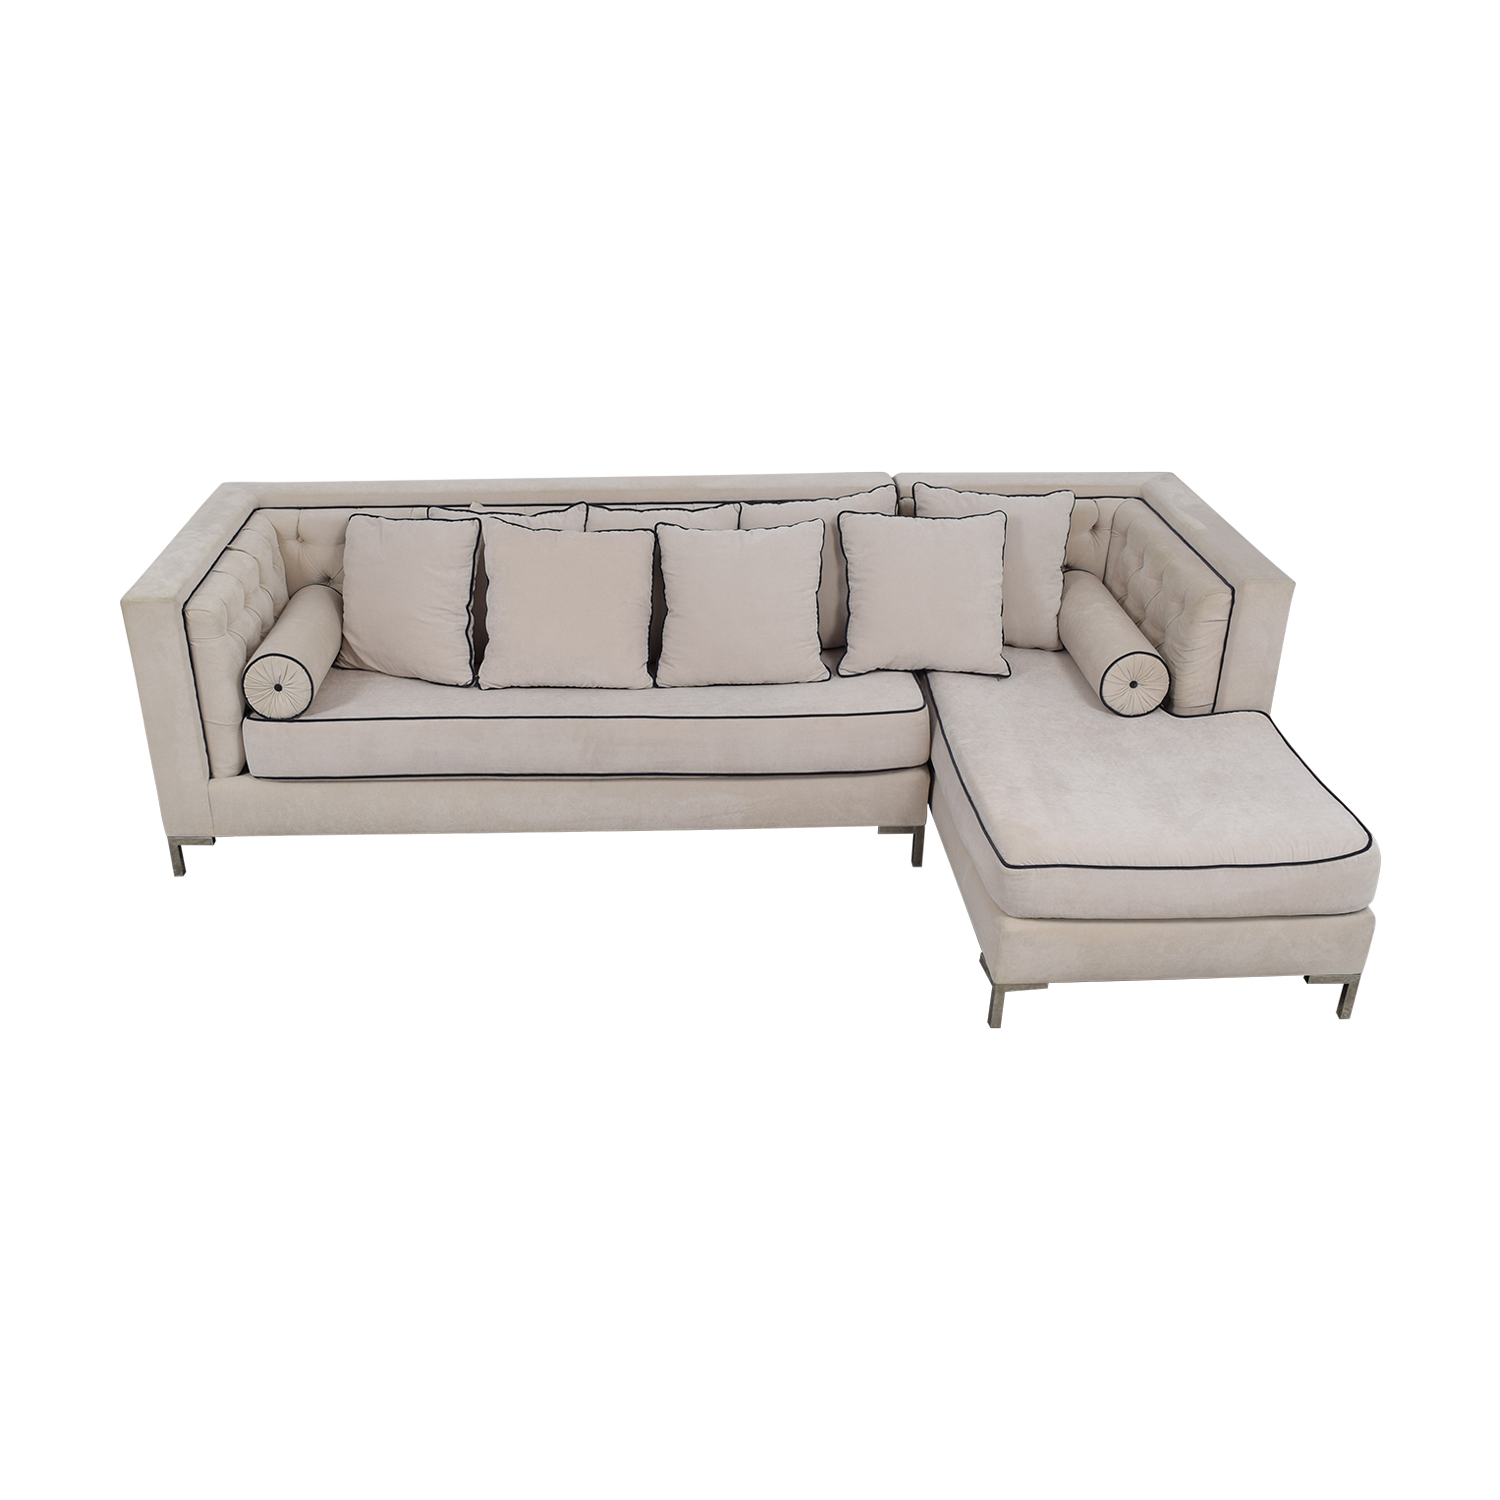 Decenni Tobias Decenni Tobias White Chaise Sectional for sale